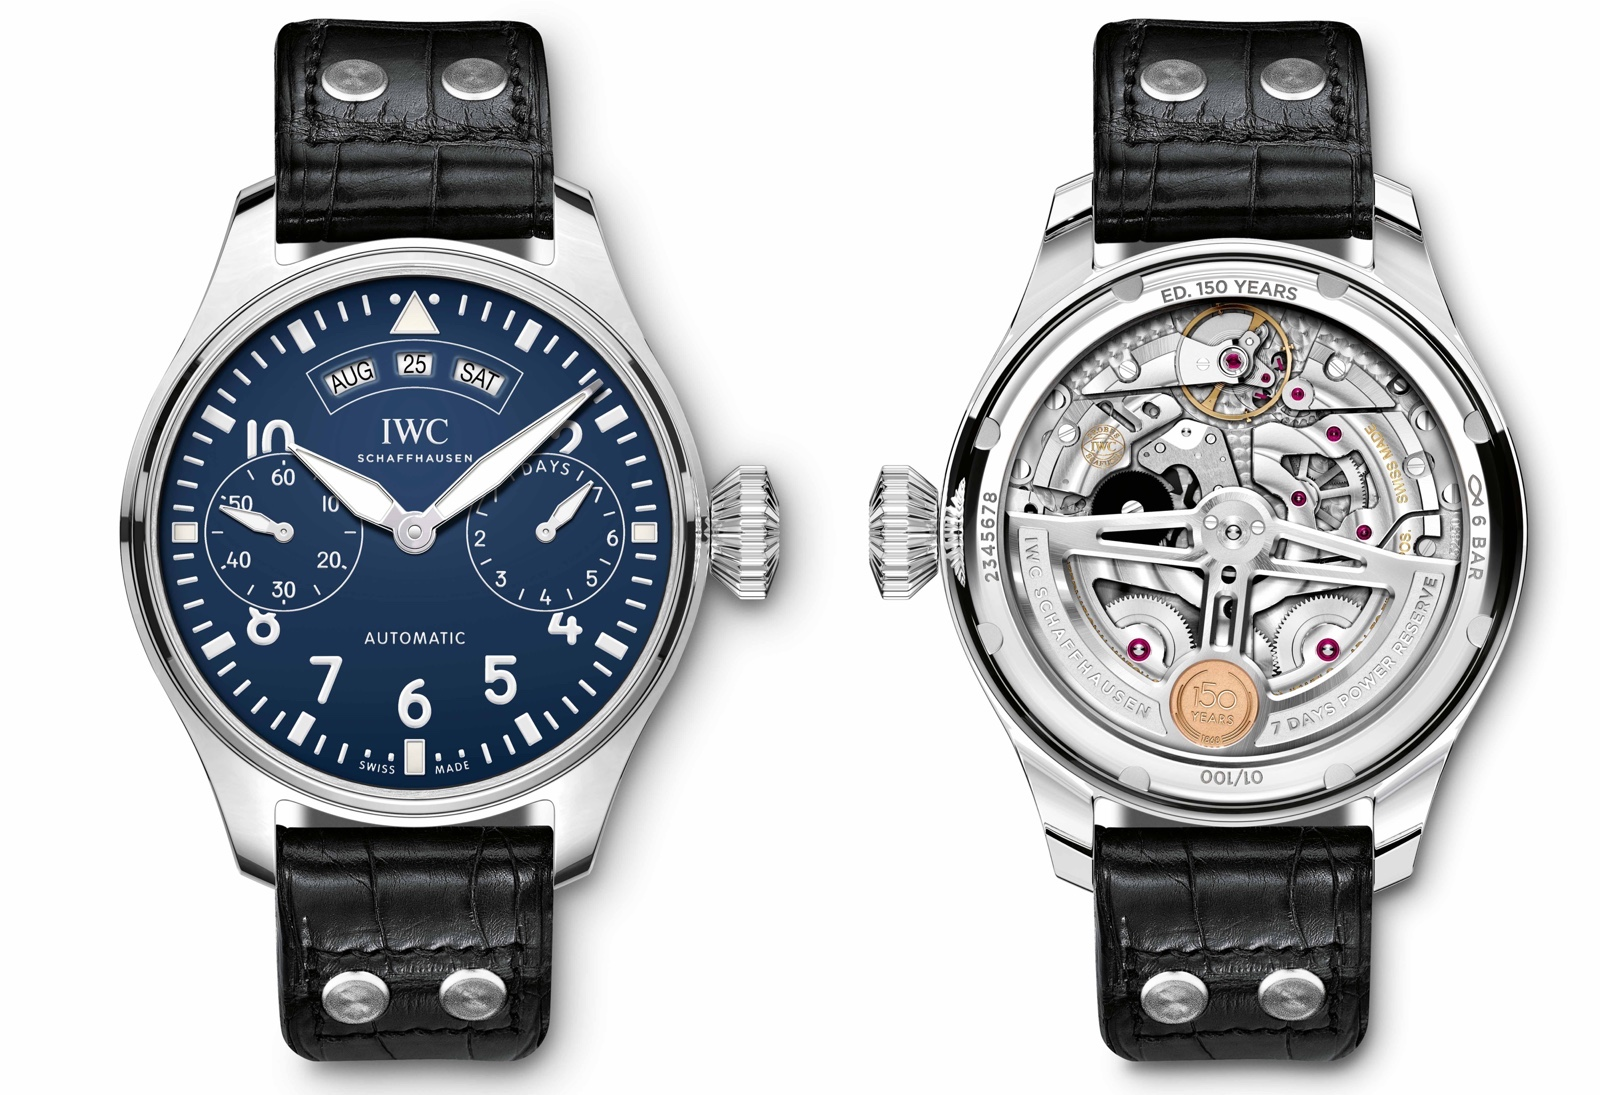 IWC Gran Reloj de Aviador Calendario Anual 150 Years